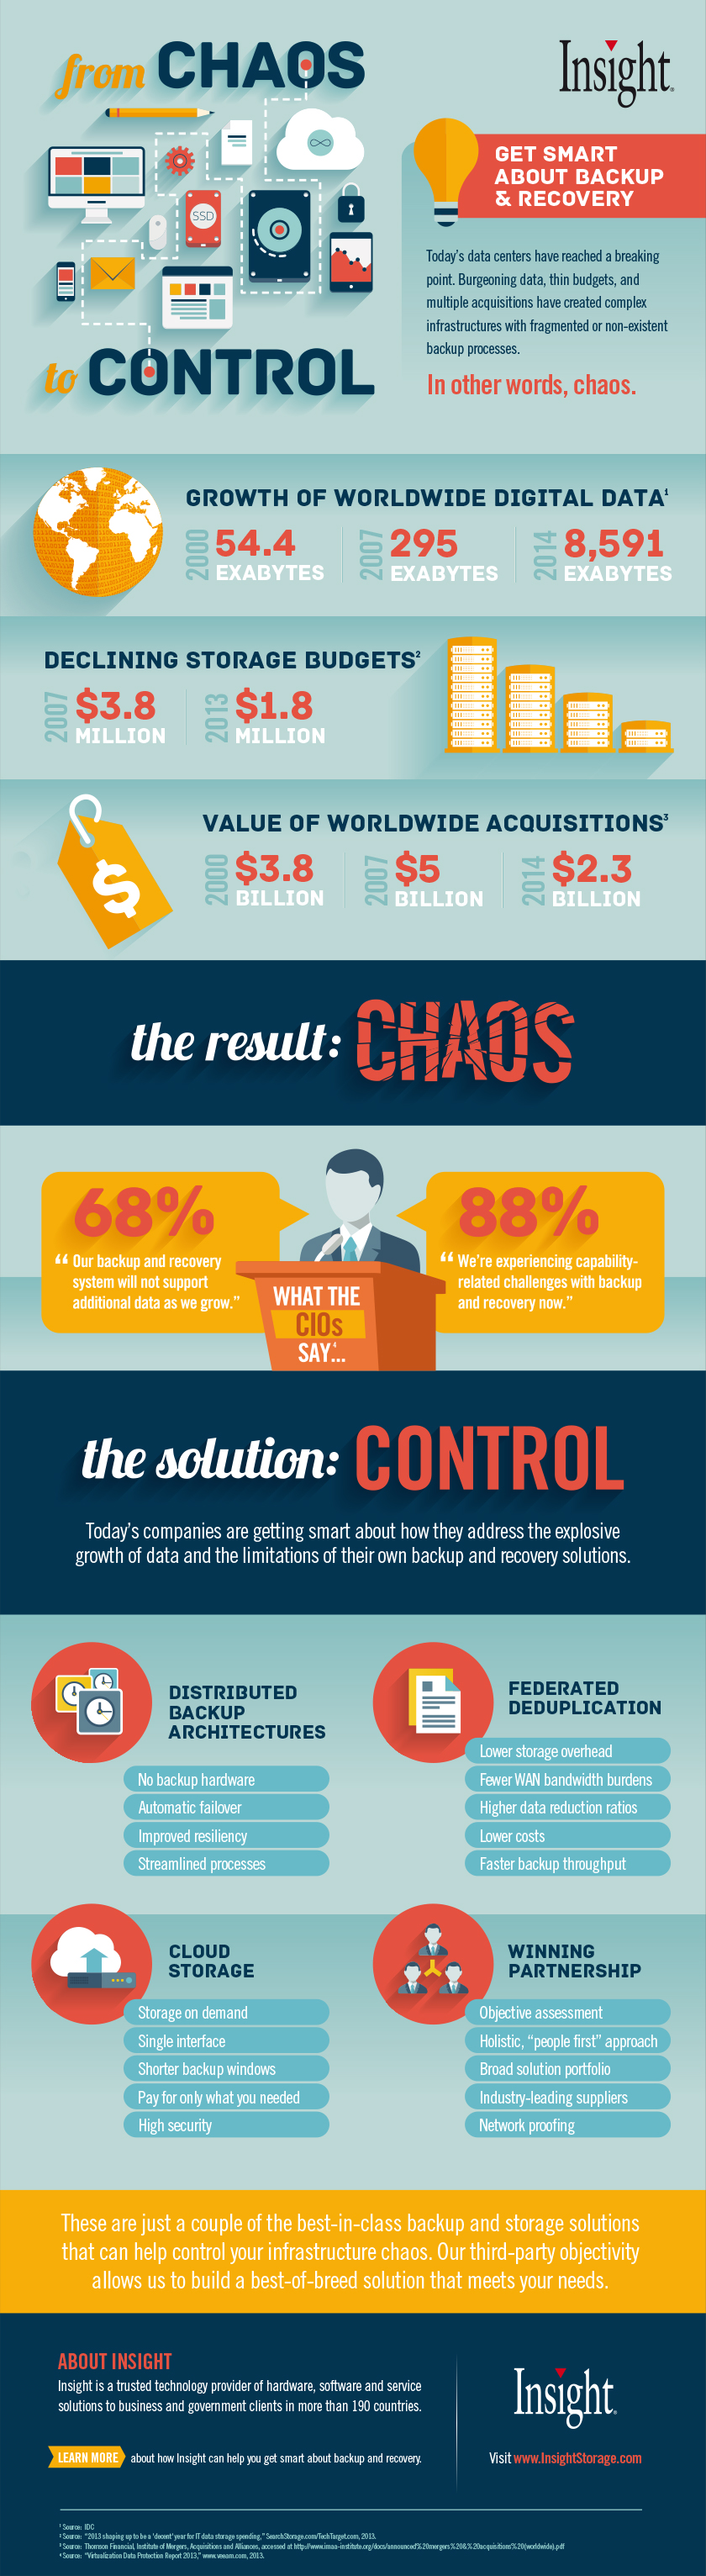 From Chaos to Control: Get Smart About Backup & Recovery